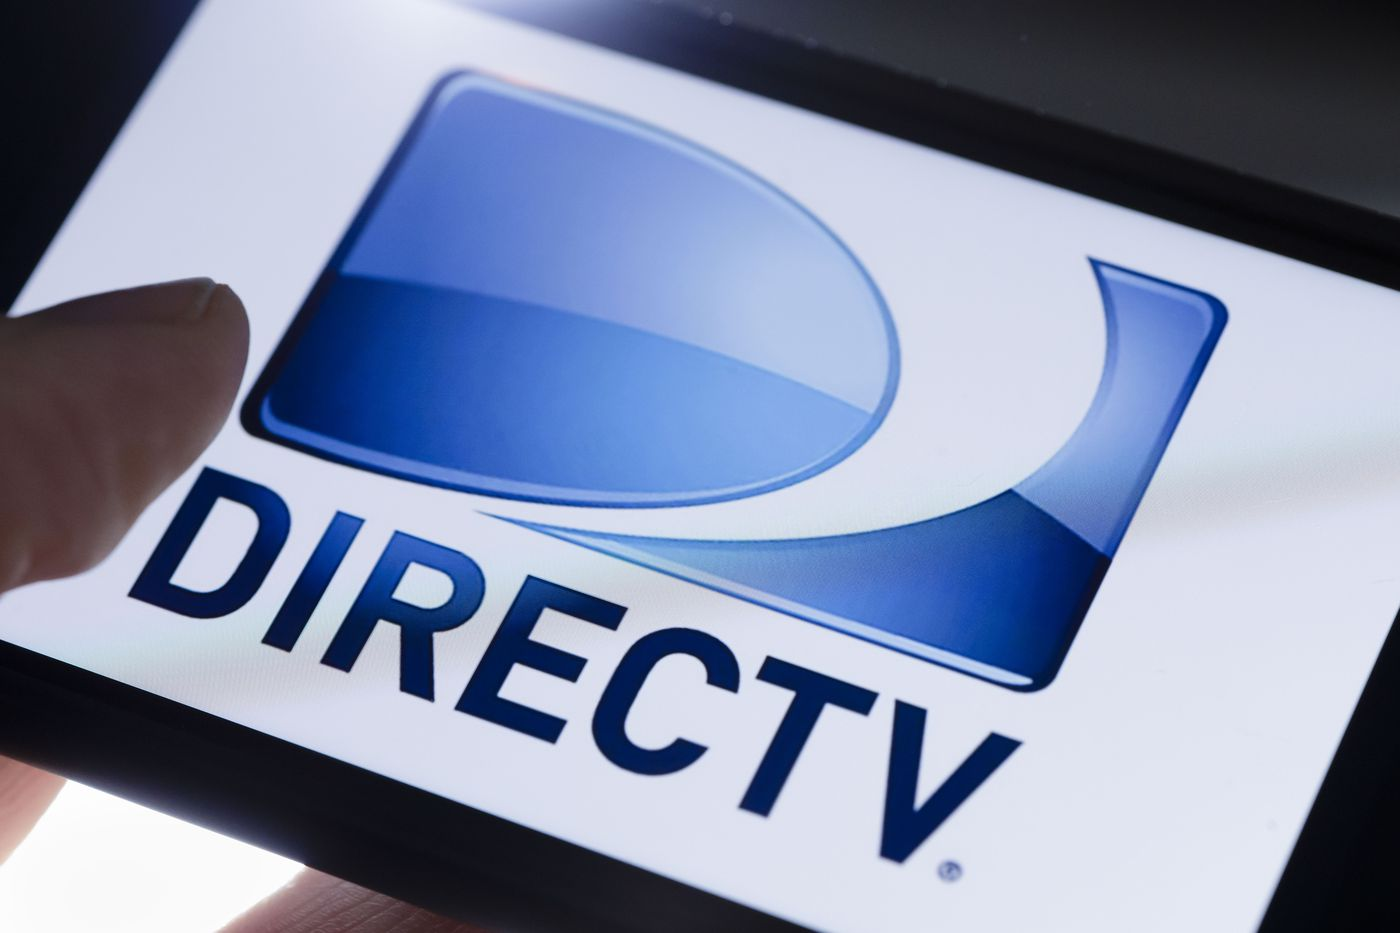 AT&T has formally turned off DirecTV, which is currently its own business